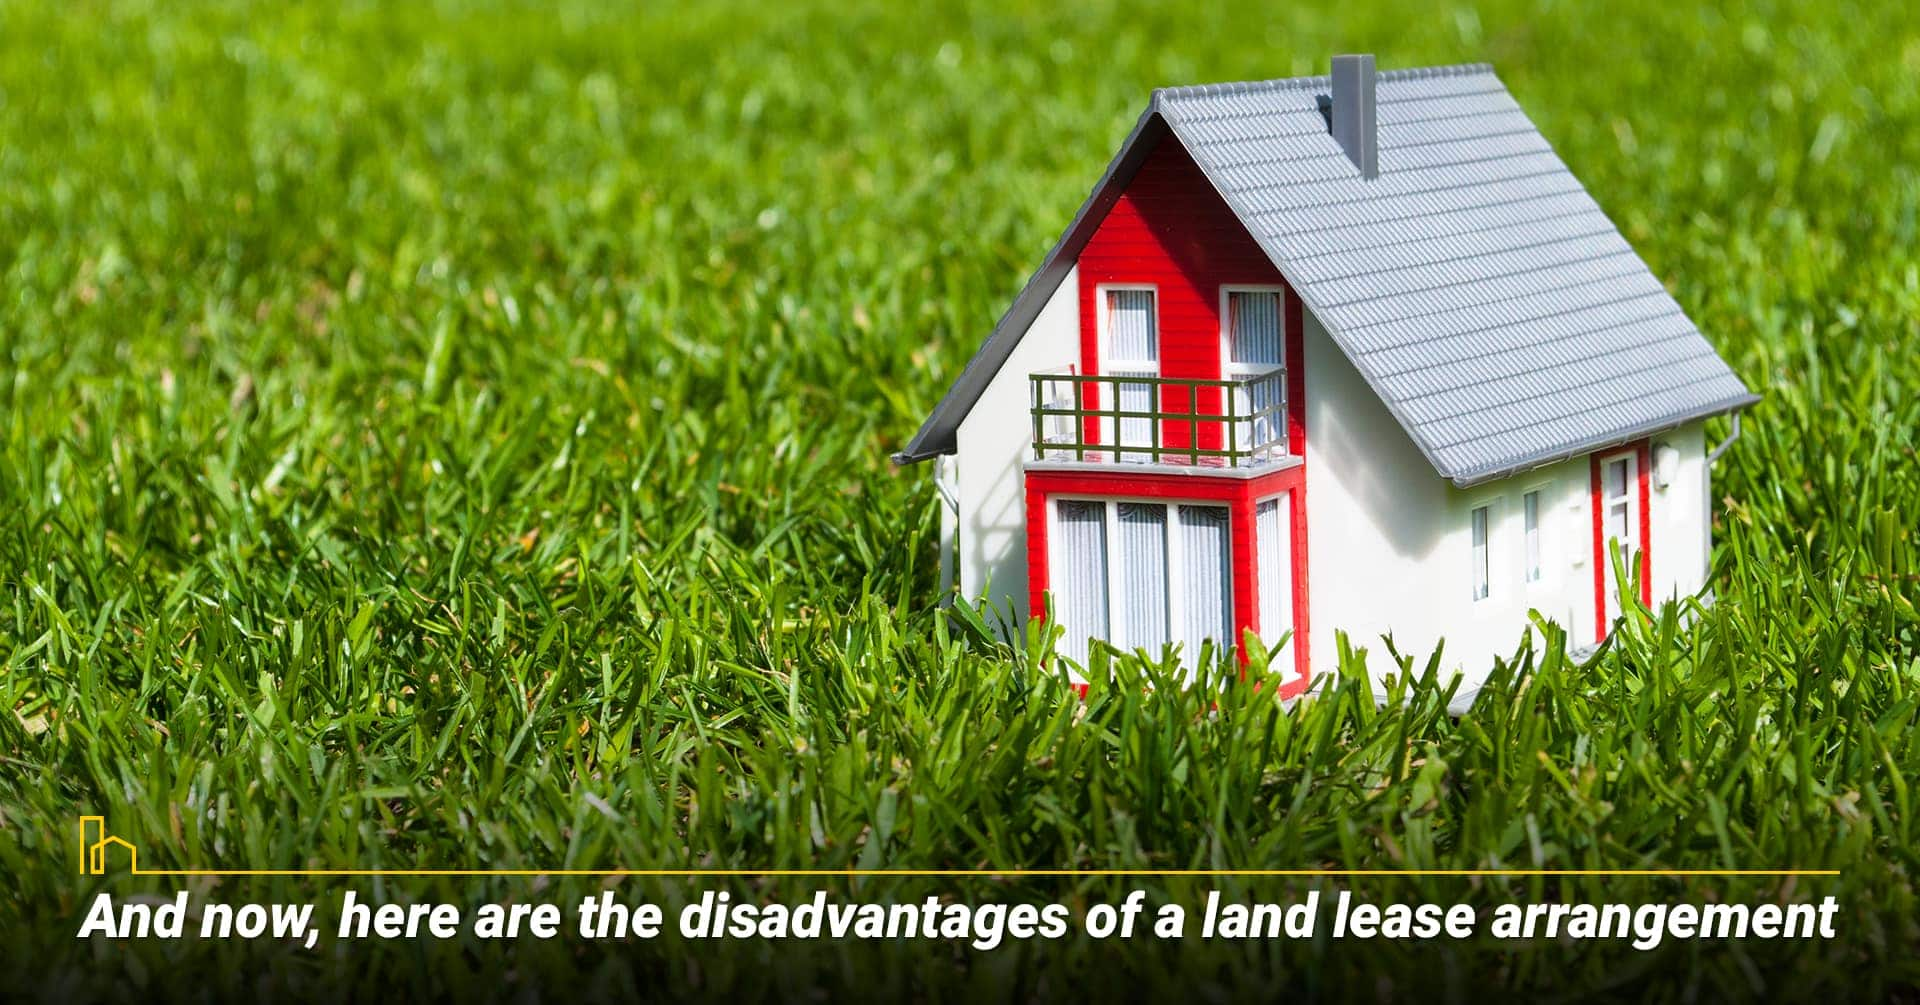 And now, here are the disadvantages of a land lease arrangement, the cons of a land lease agreement